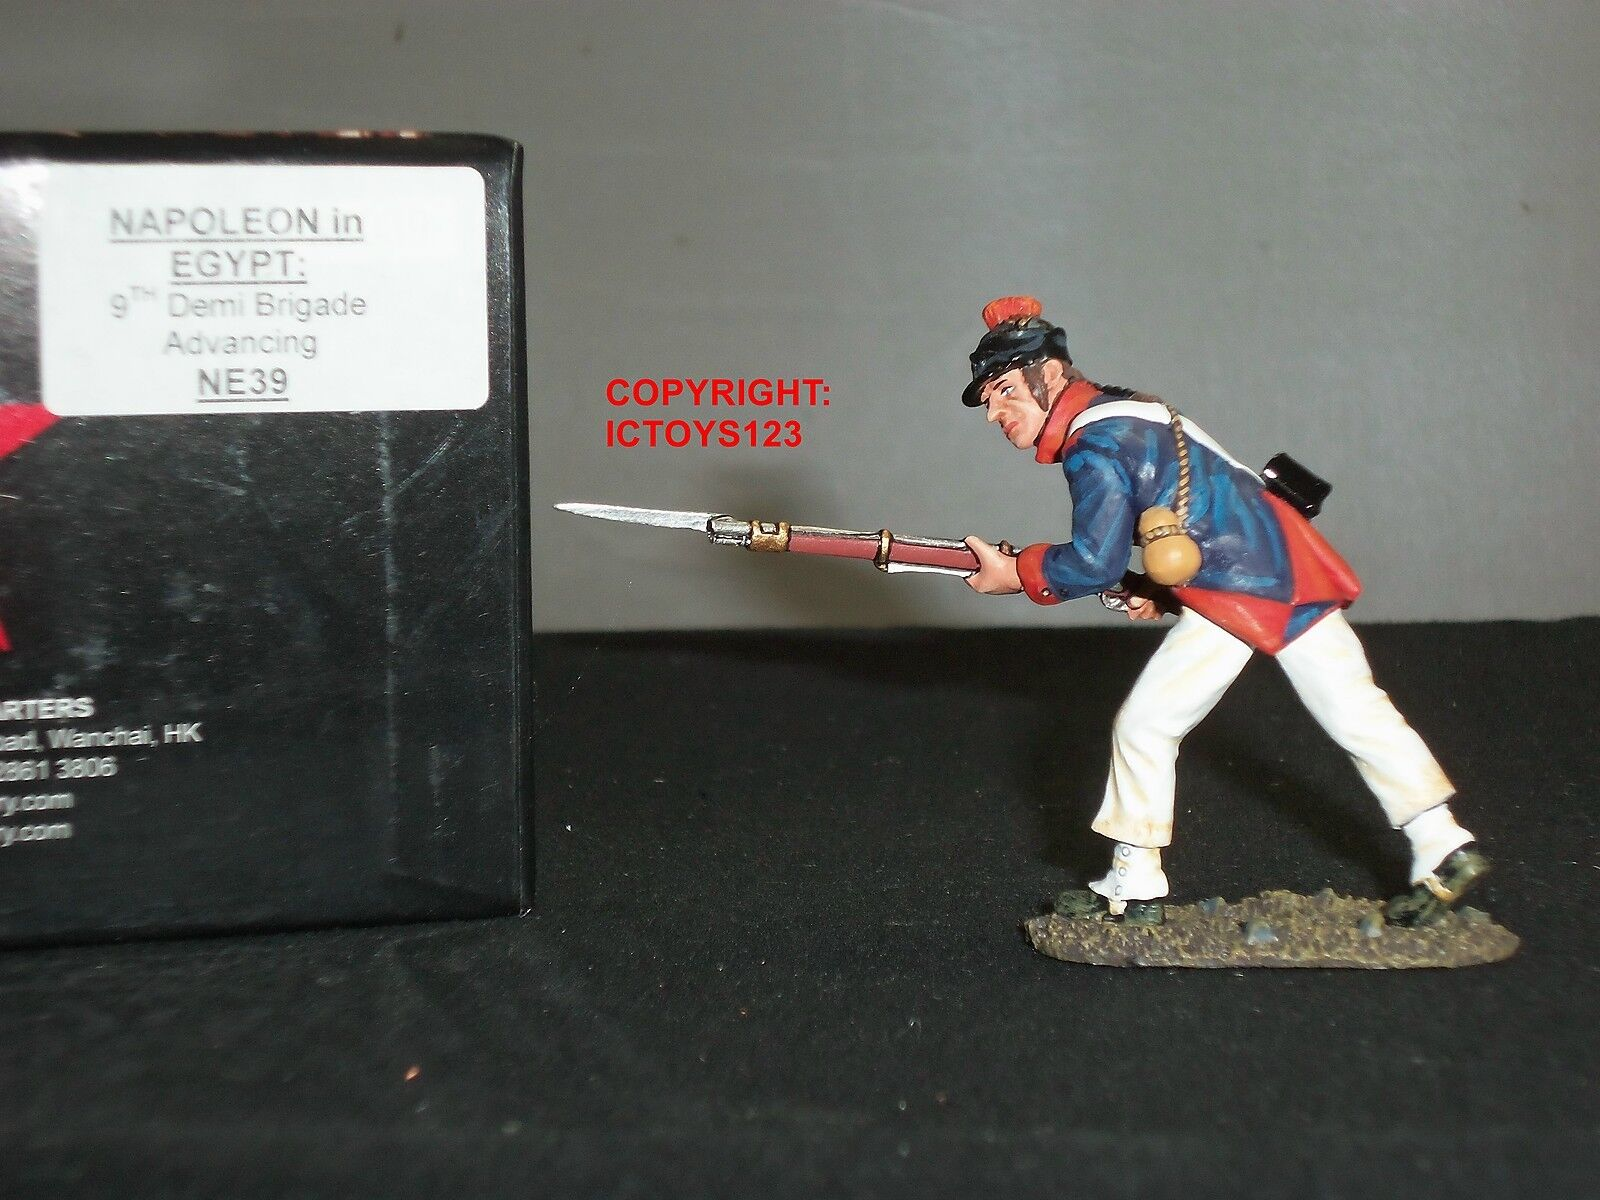 KING AND COUNTRY NE39 NAPOLEON IN EGYPT 9TH DEMI BRIGADE ADVANCING TOY SOLDIER